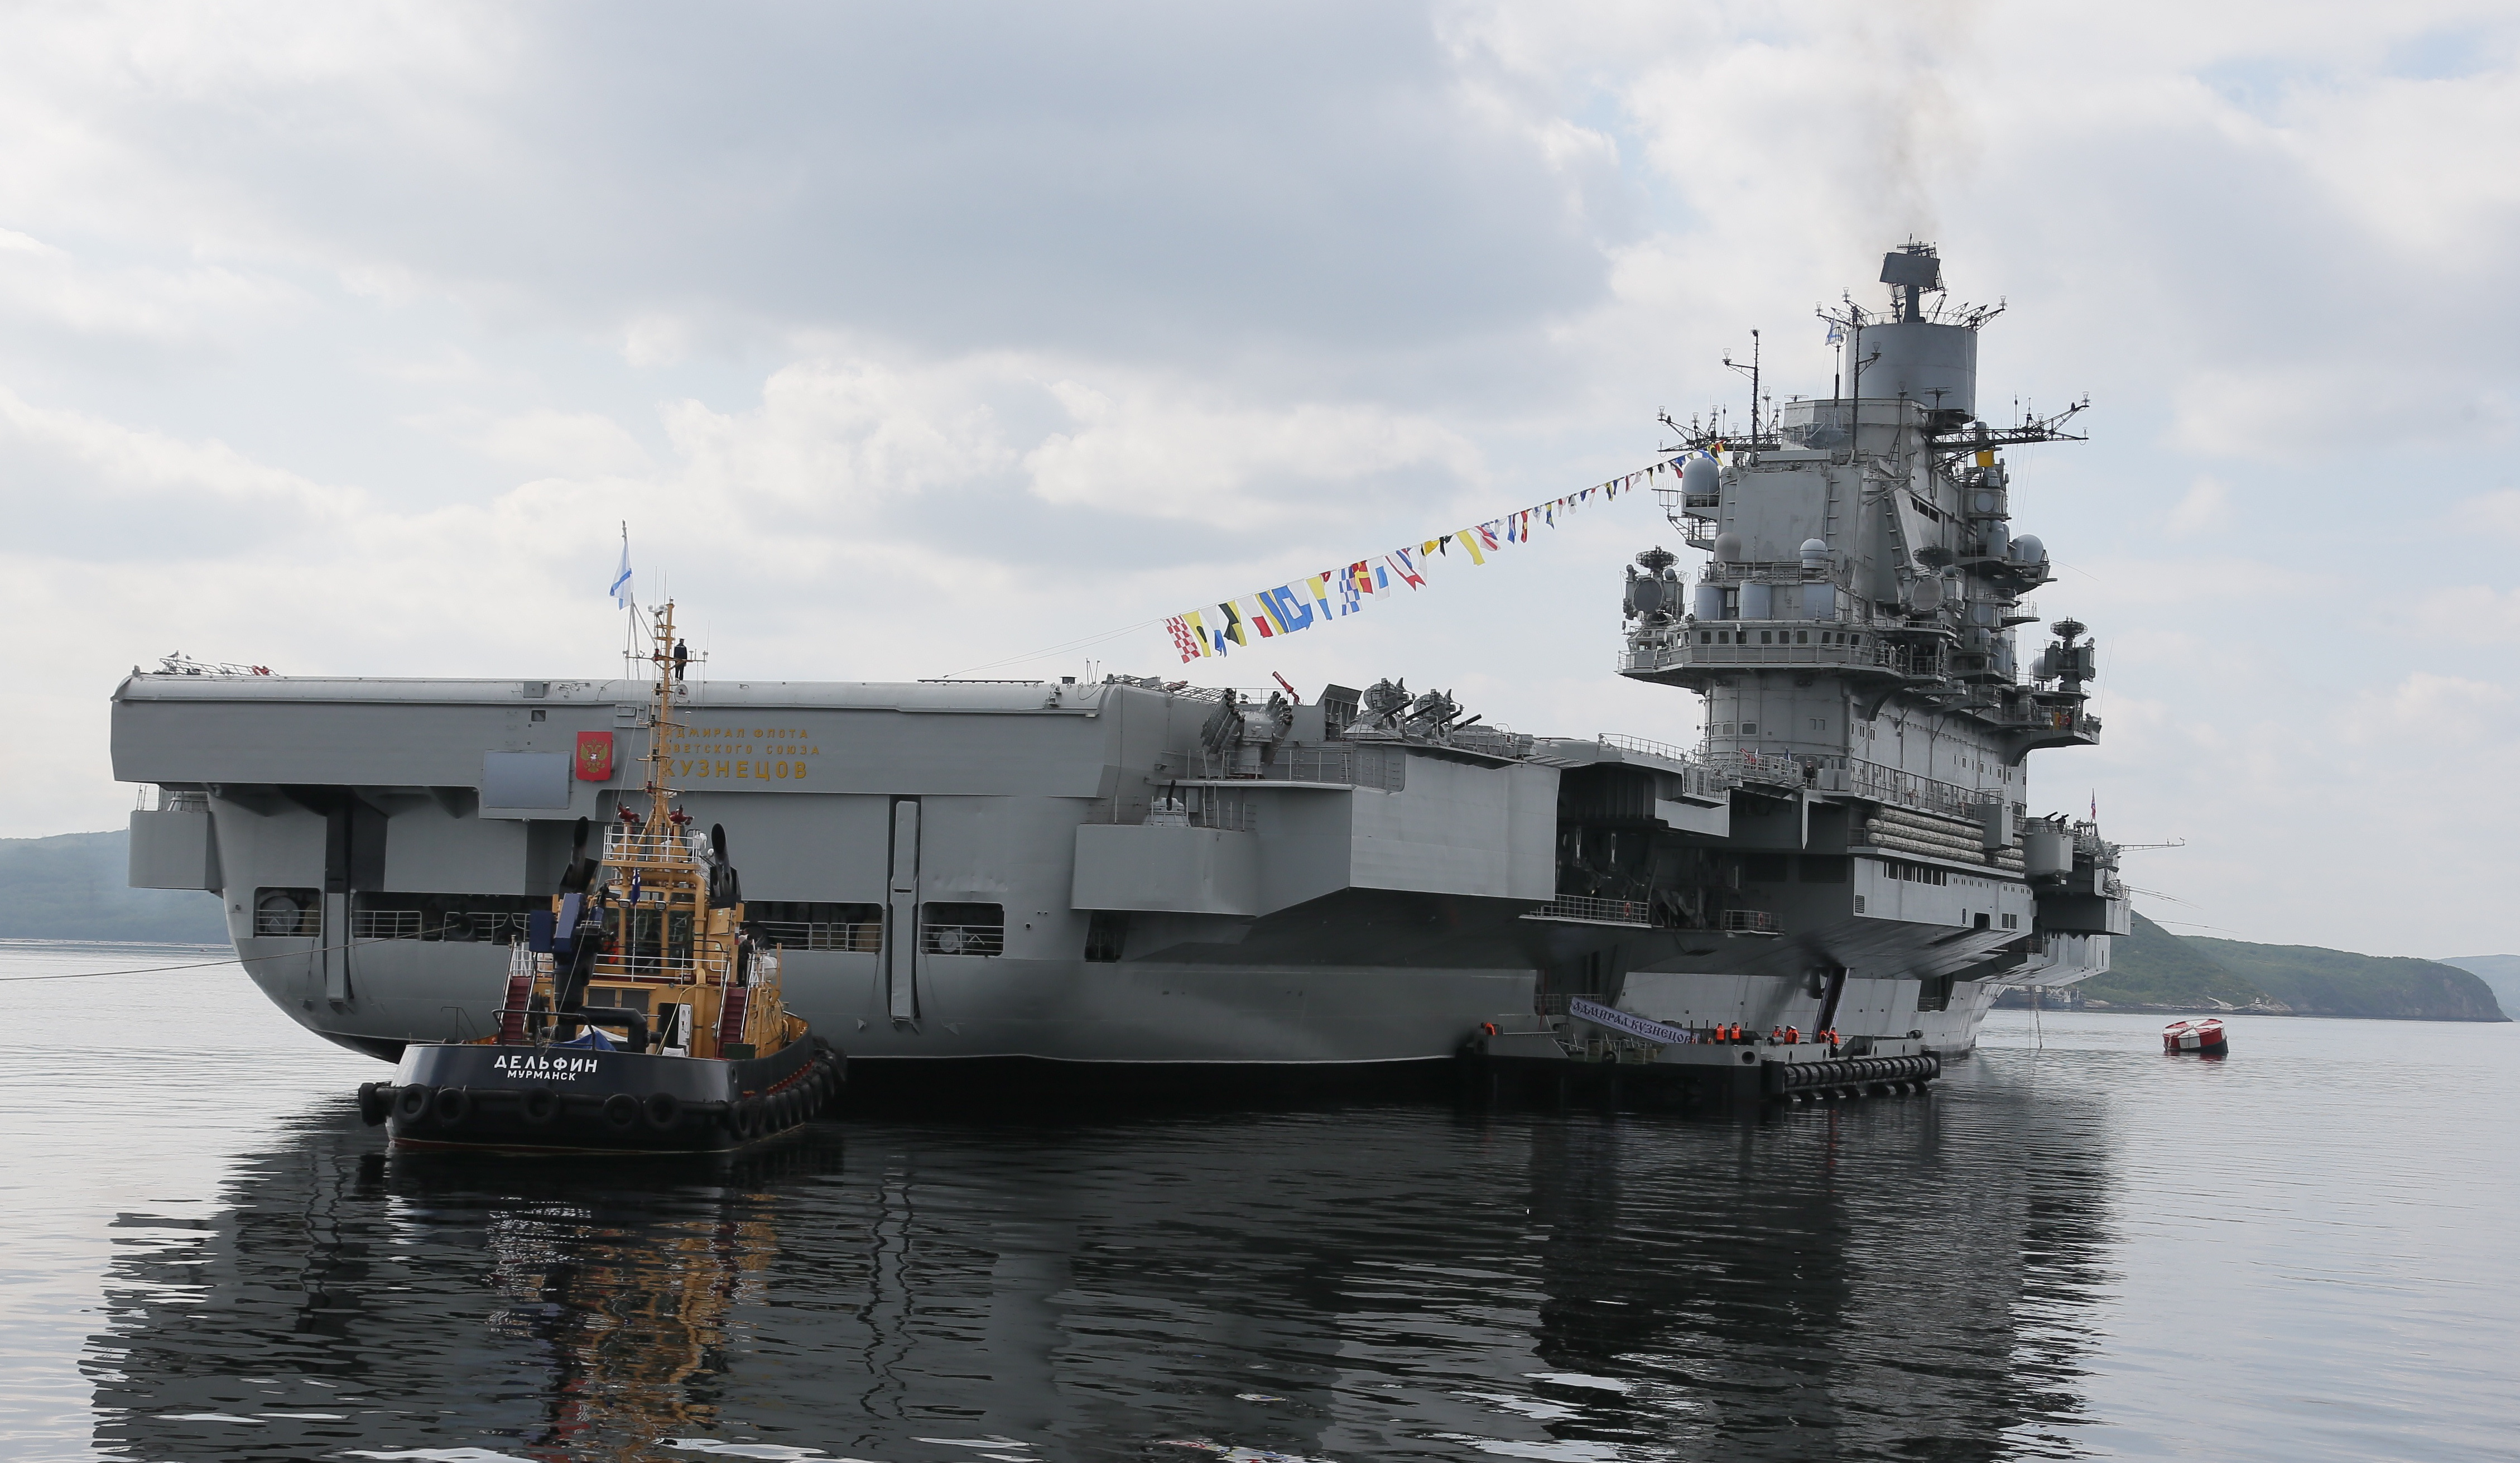 Russian Navy - Marine Russe - Page 17 32874997306_7be884df5b_o